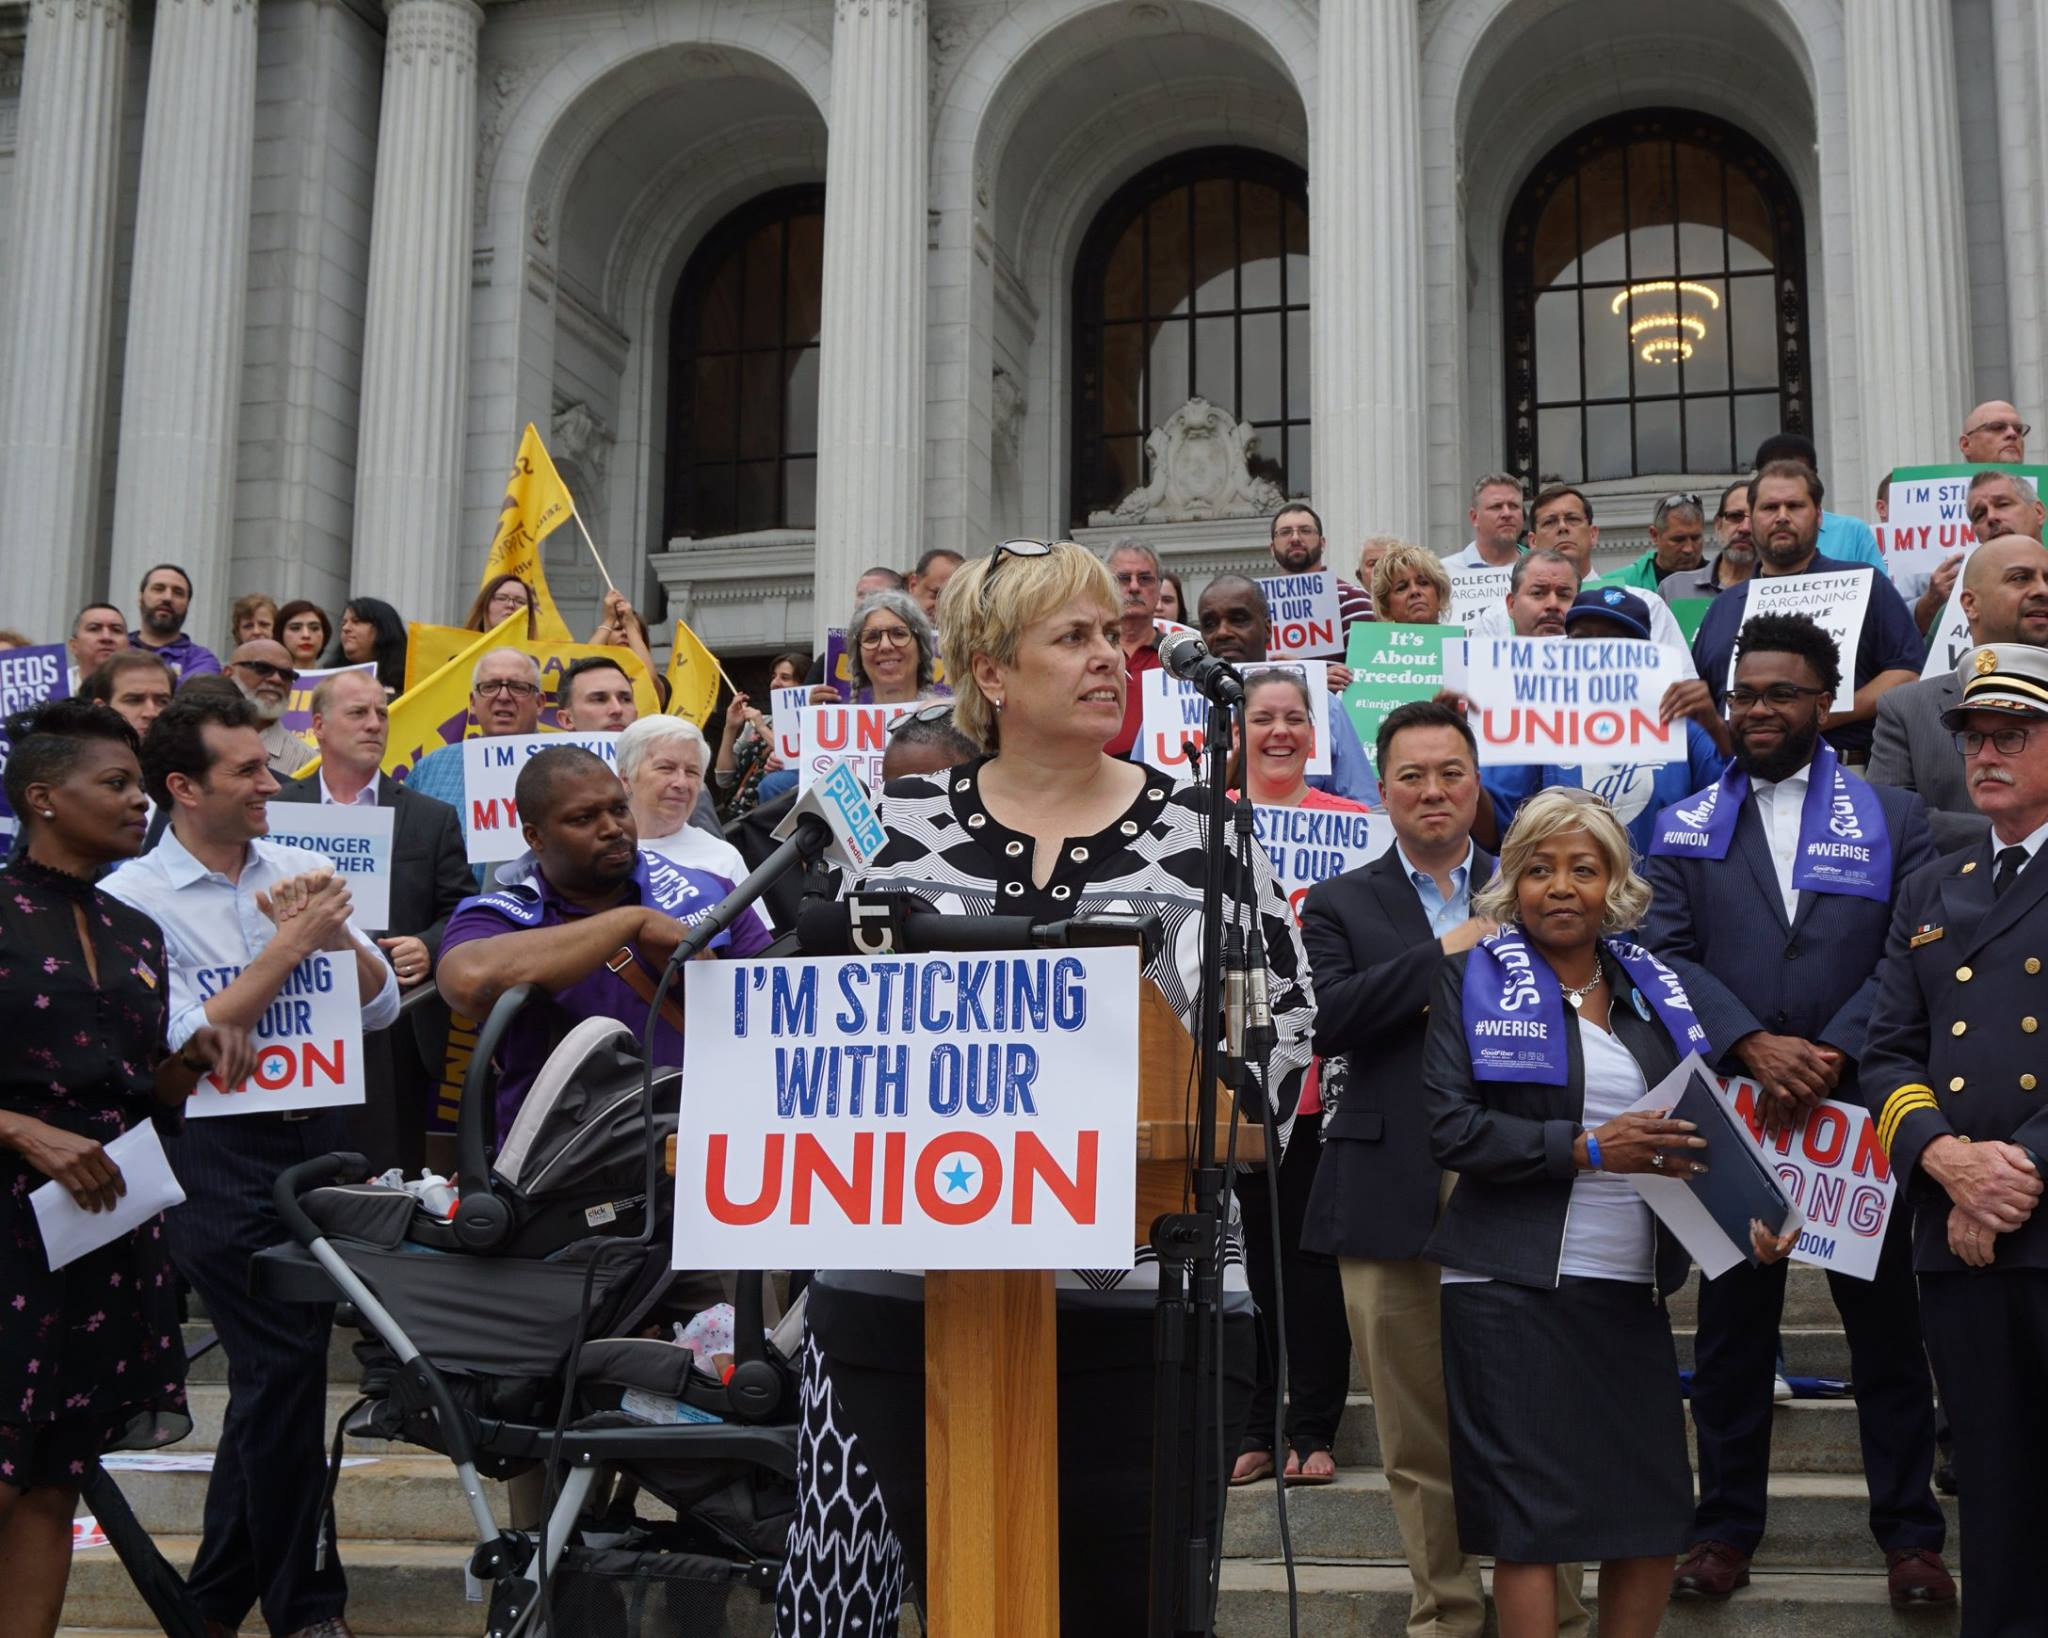 Labor Committee bill would allow automatic union deductions from pensions